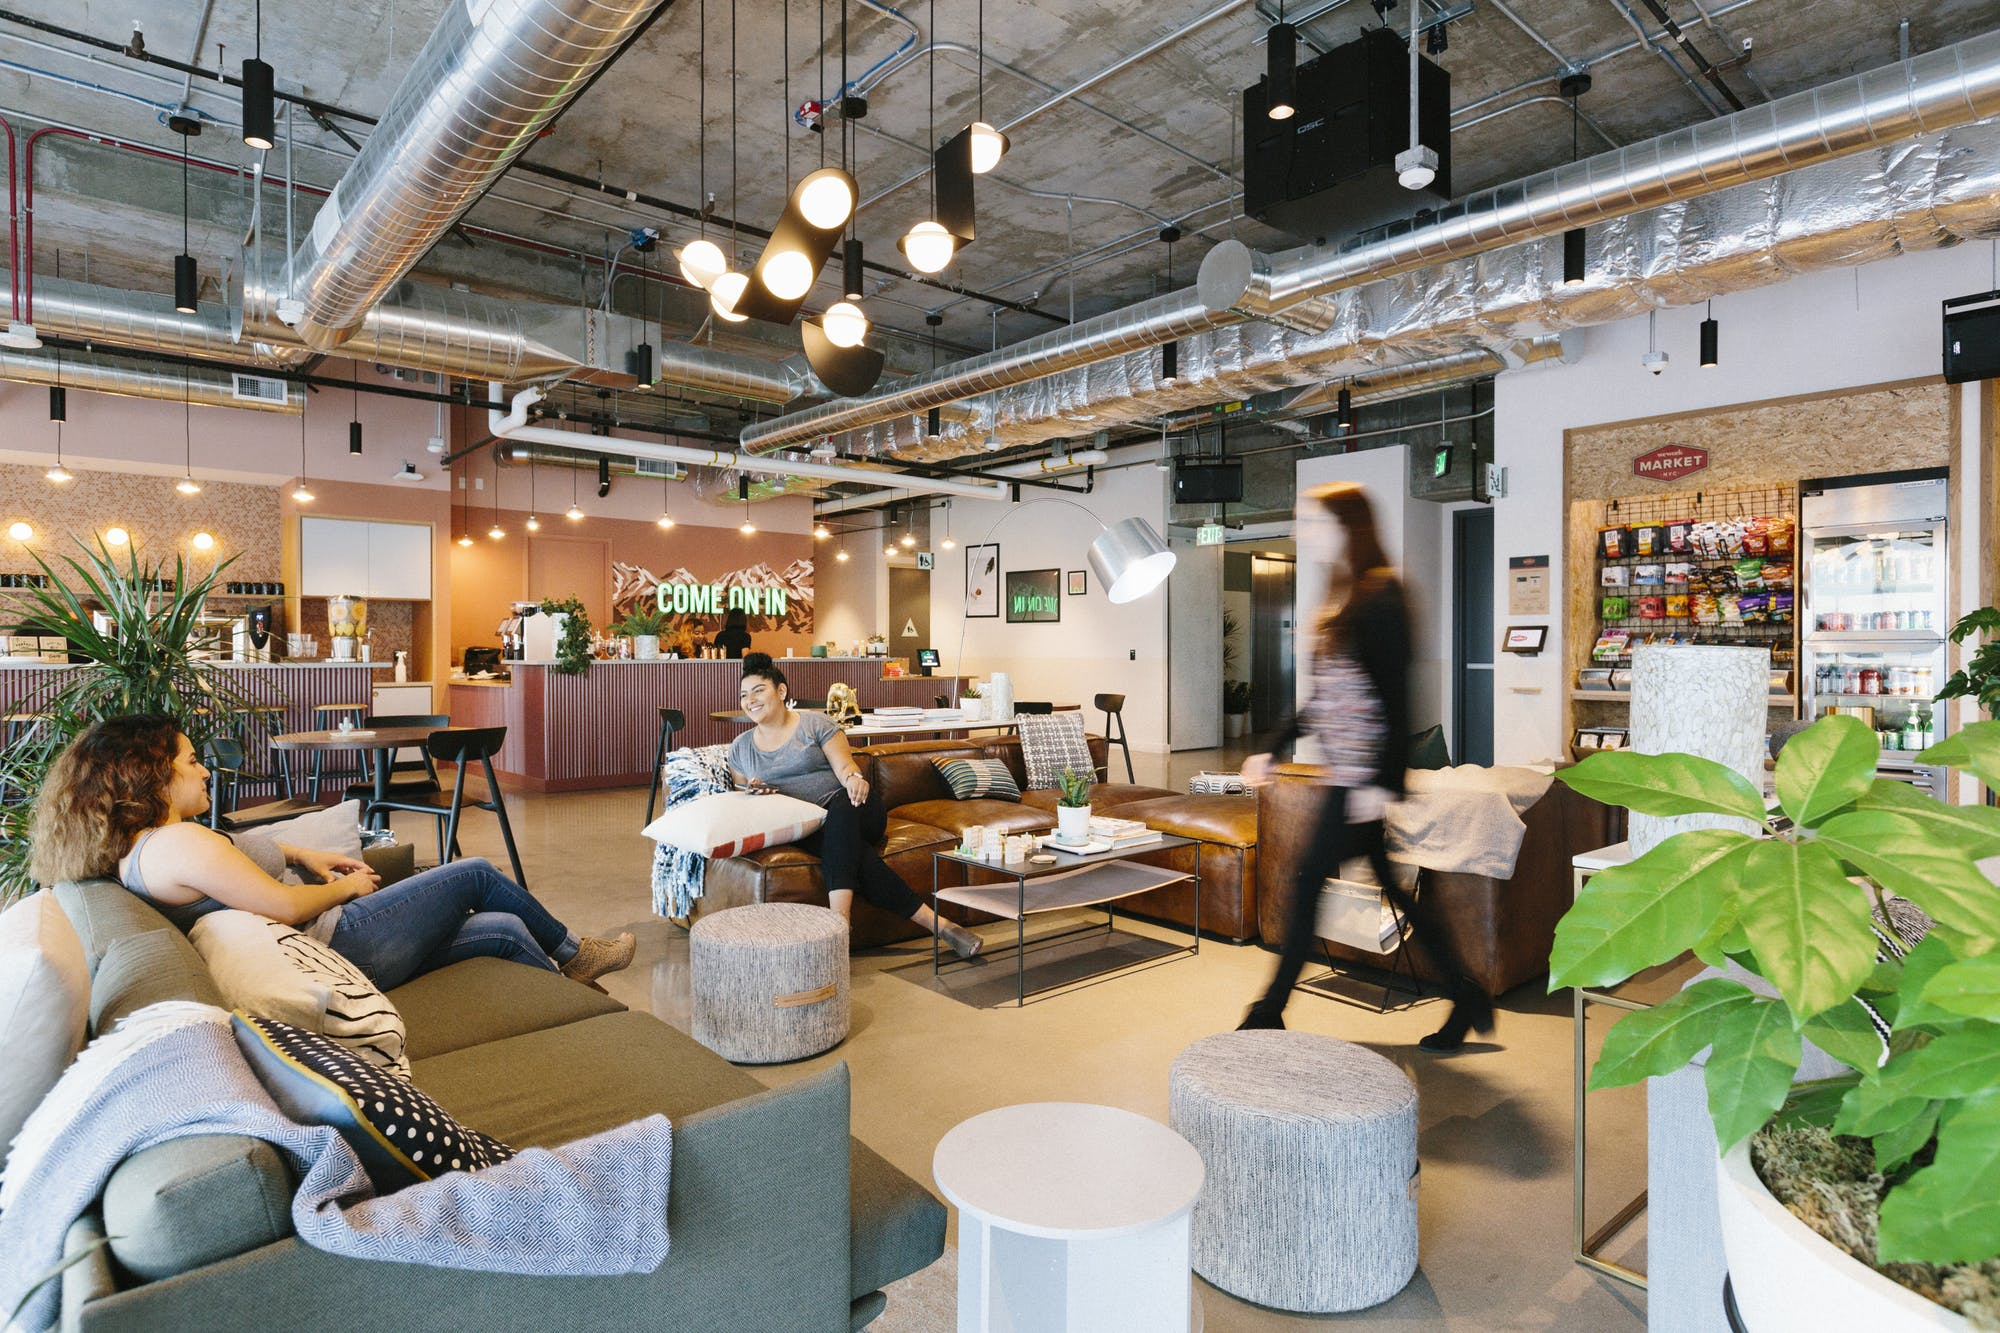 Wework Terminus Atlanta Read Reviews Amp Book Online